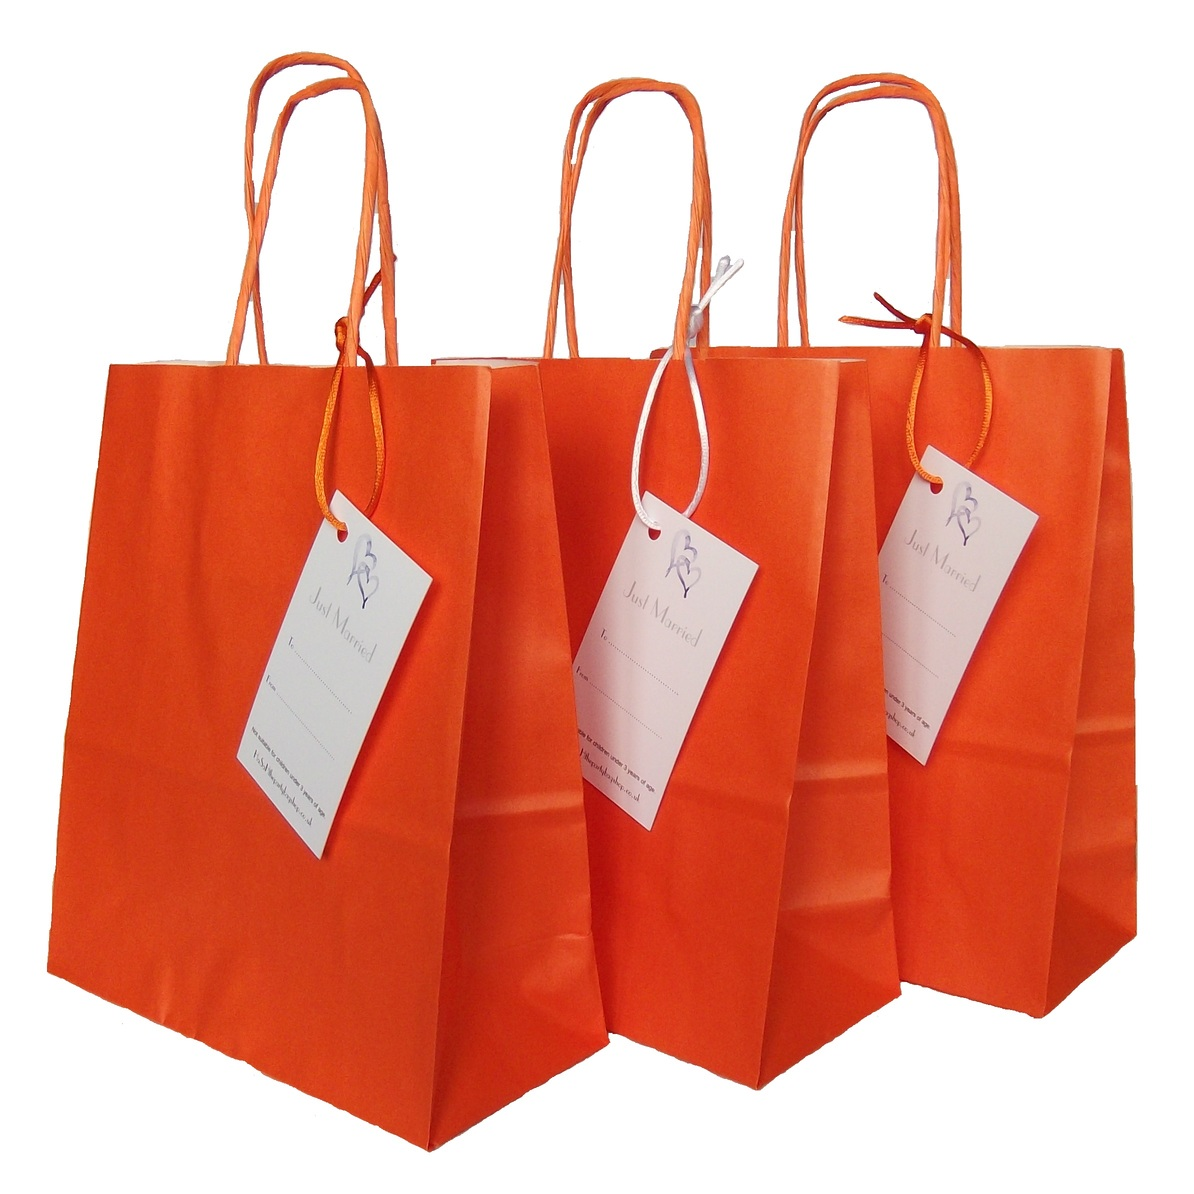 Wedding Gift Paper Bags : Wedding Paper Orange Gift Favour Bag with Just Married Label